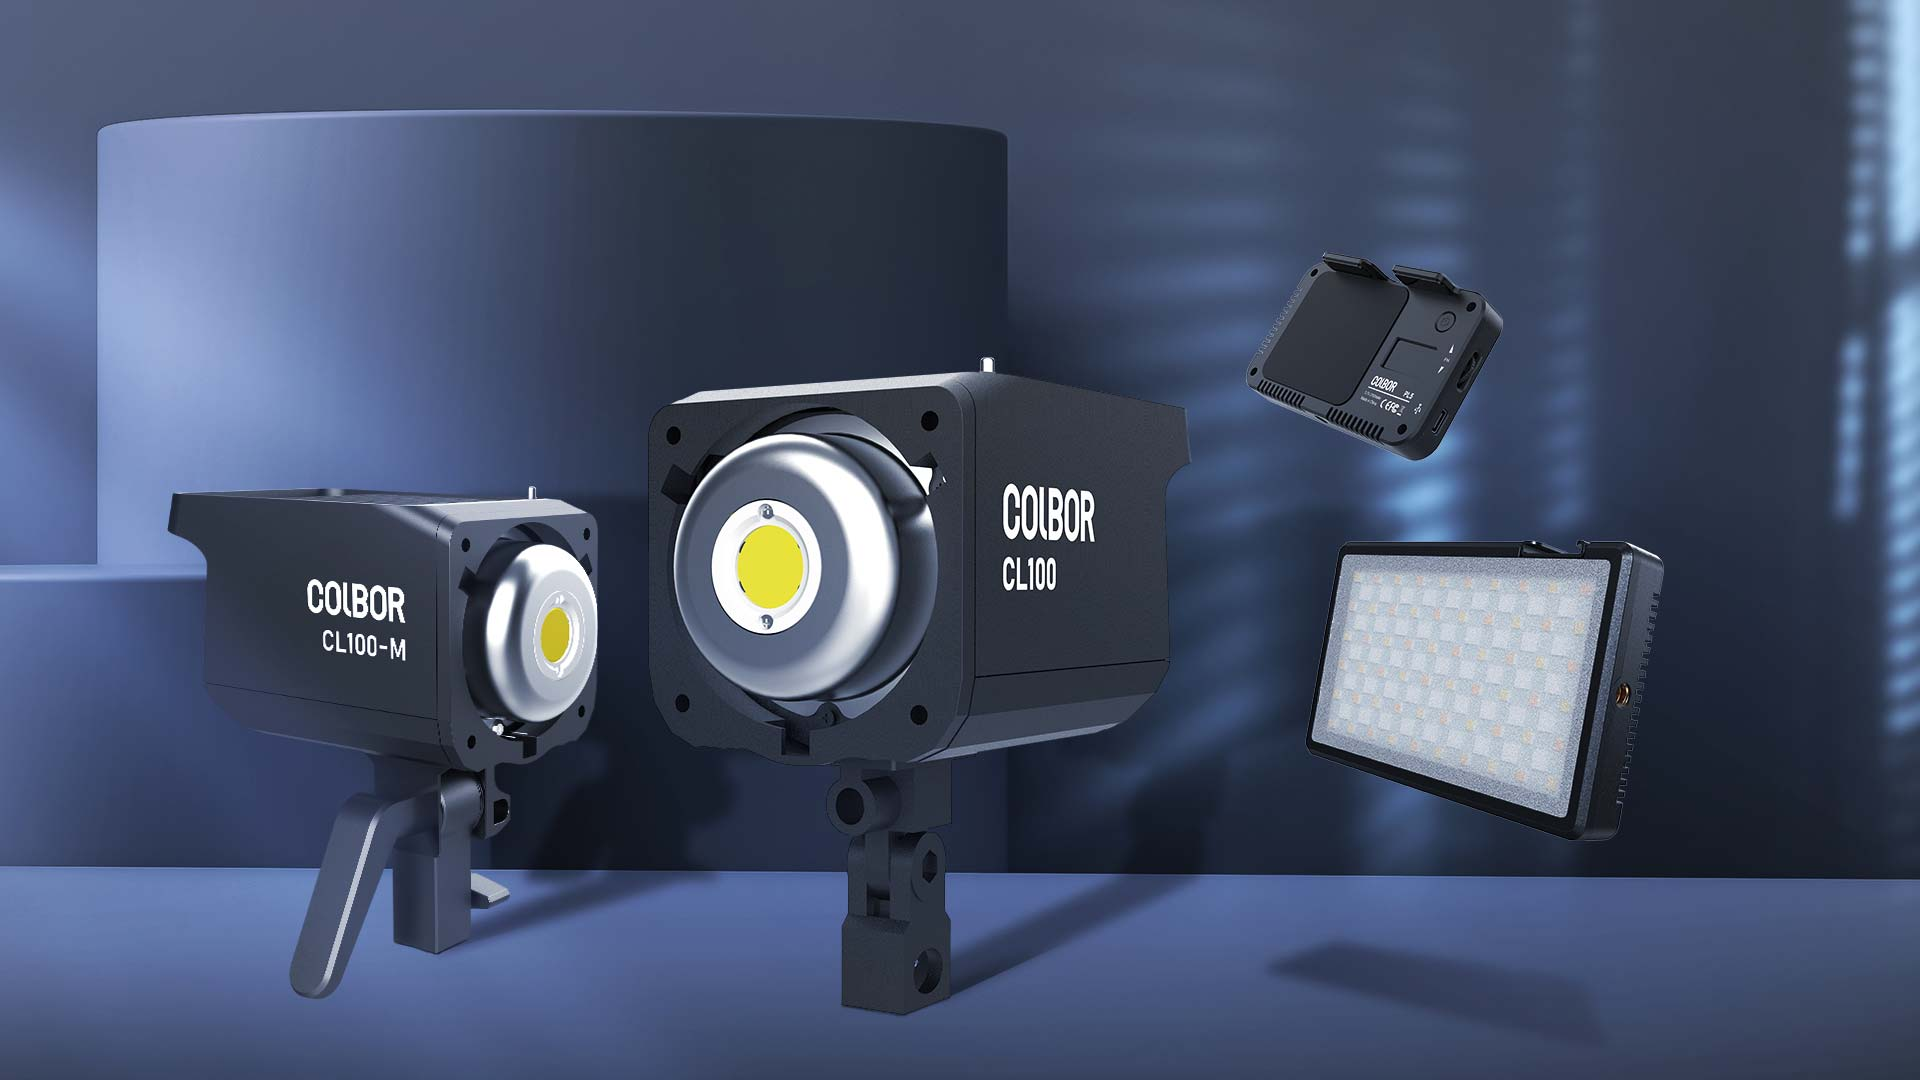 COLBOR continuous lights